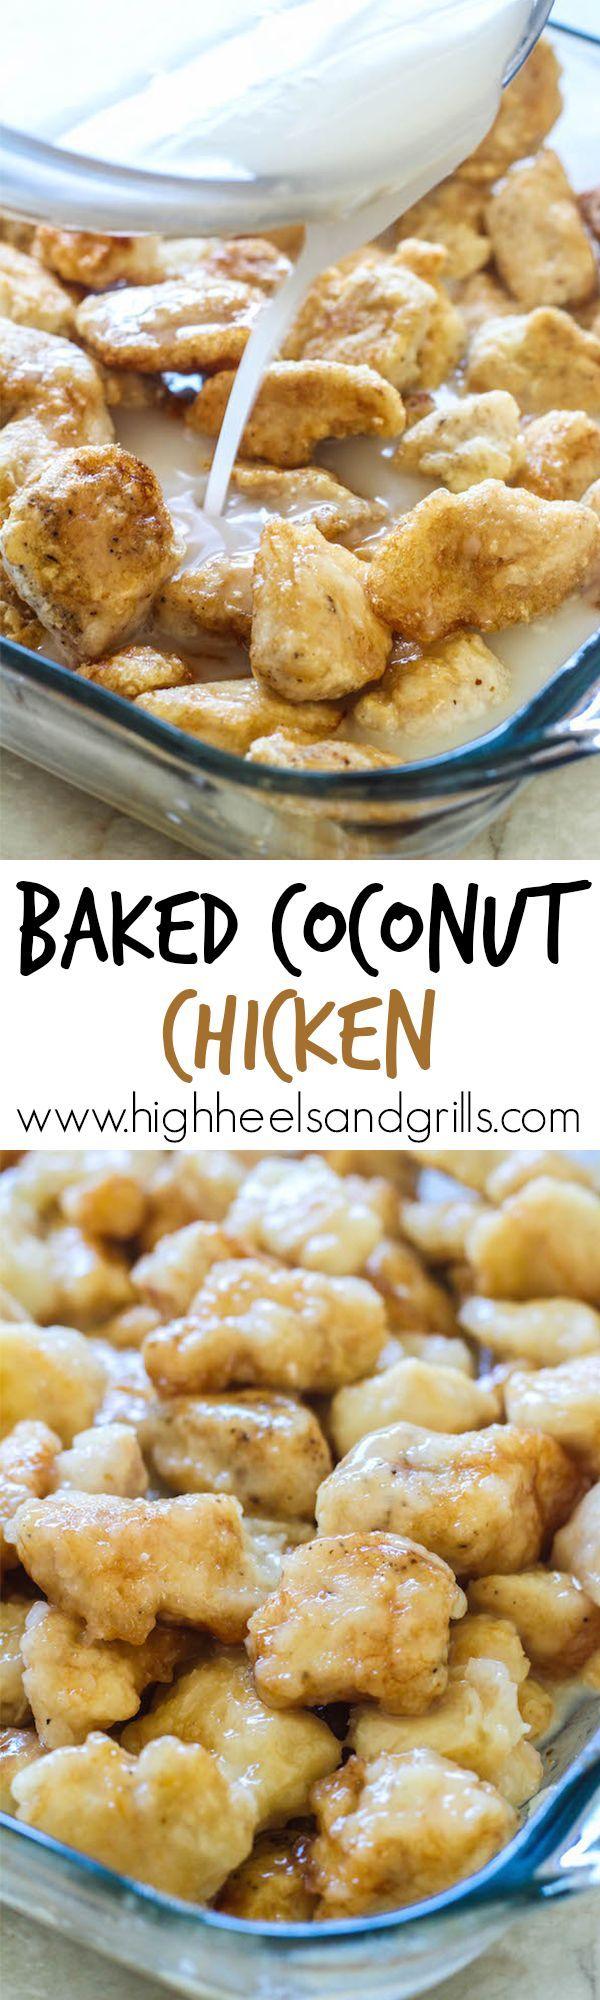 Baked Coconut Chicken - Better than take-out and half the price too. This is my favorite homemade Asian dinner! http://www.highheelsandgrills.com/baked-coconut-chicken-recipe/ ?